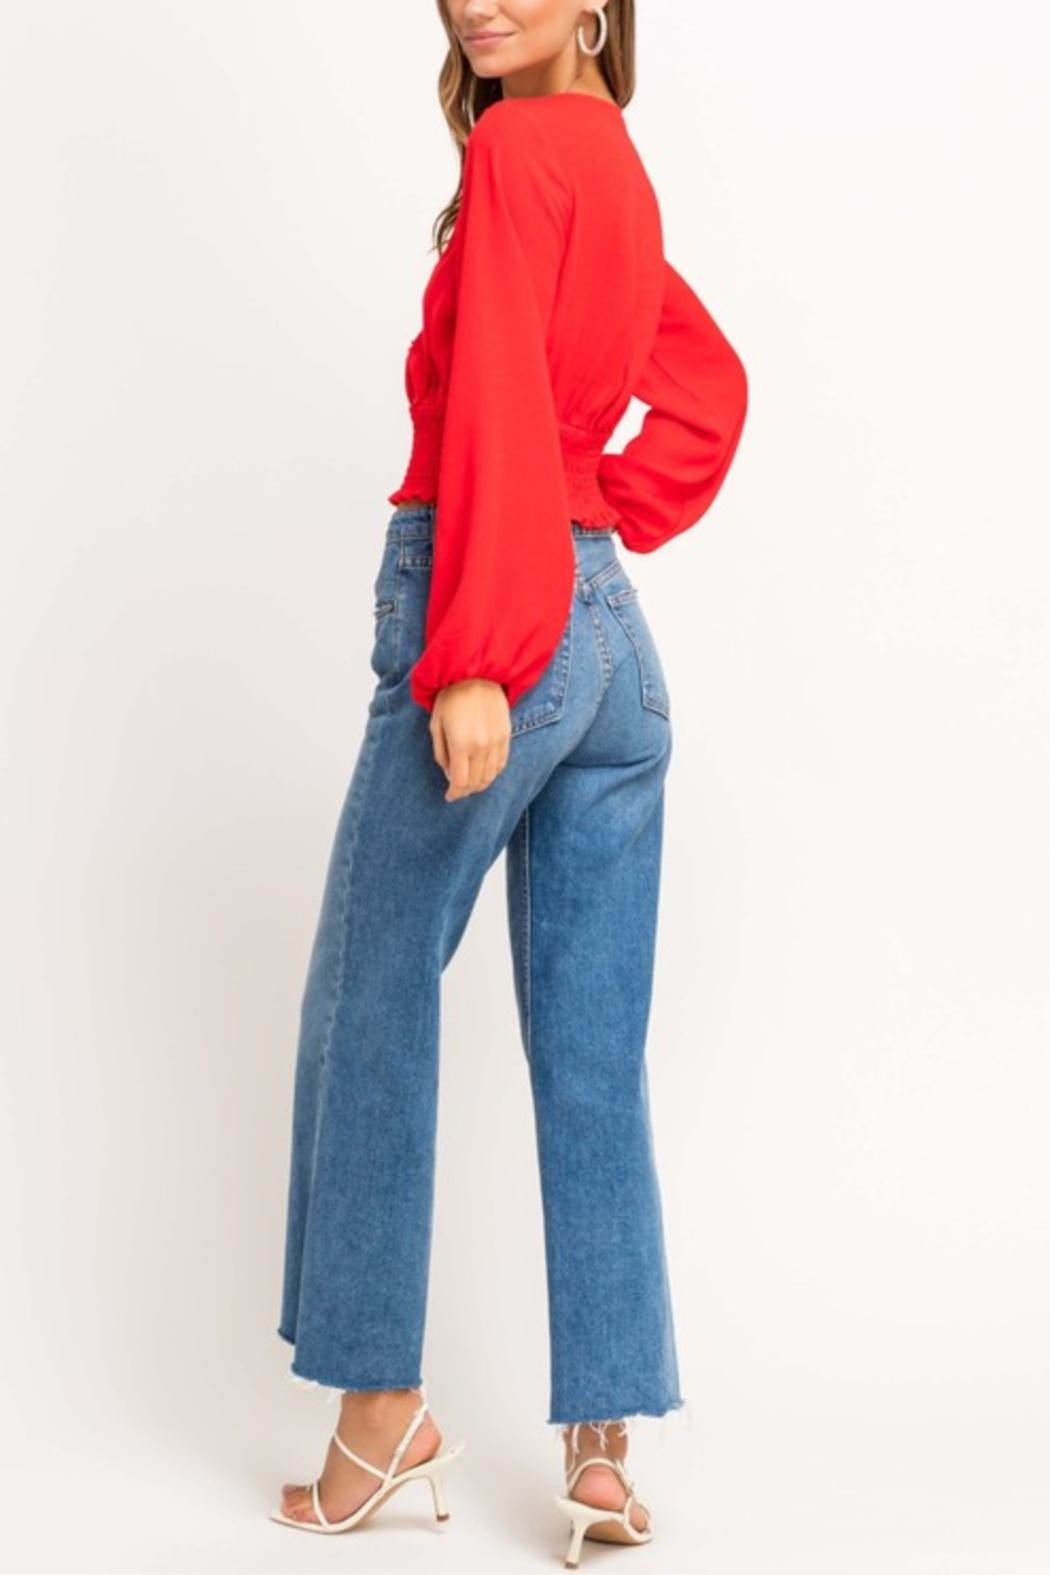 Lush Cherry Pop Crop Top - Side Cropped Image